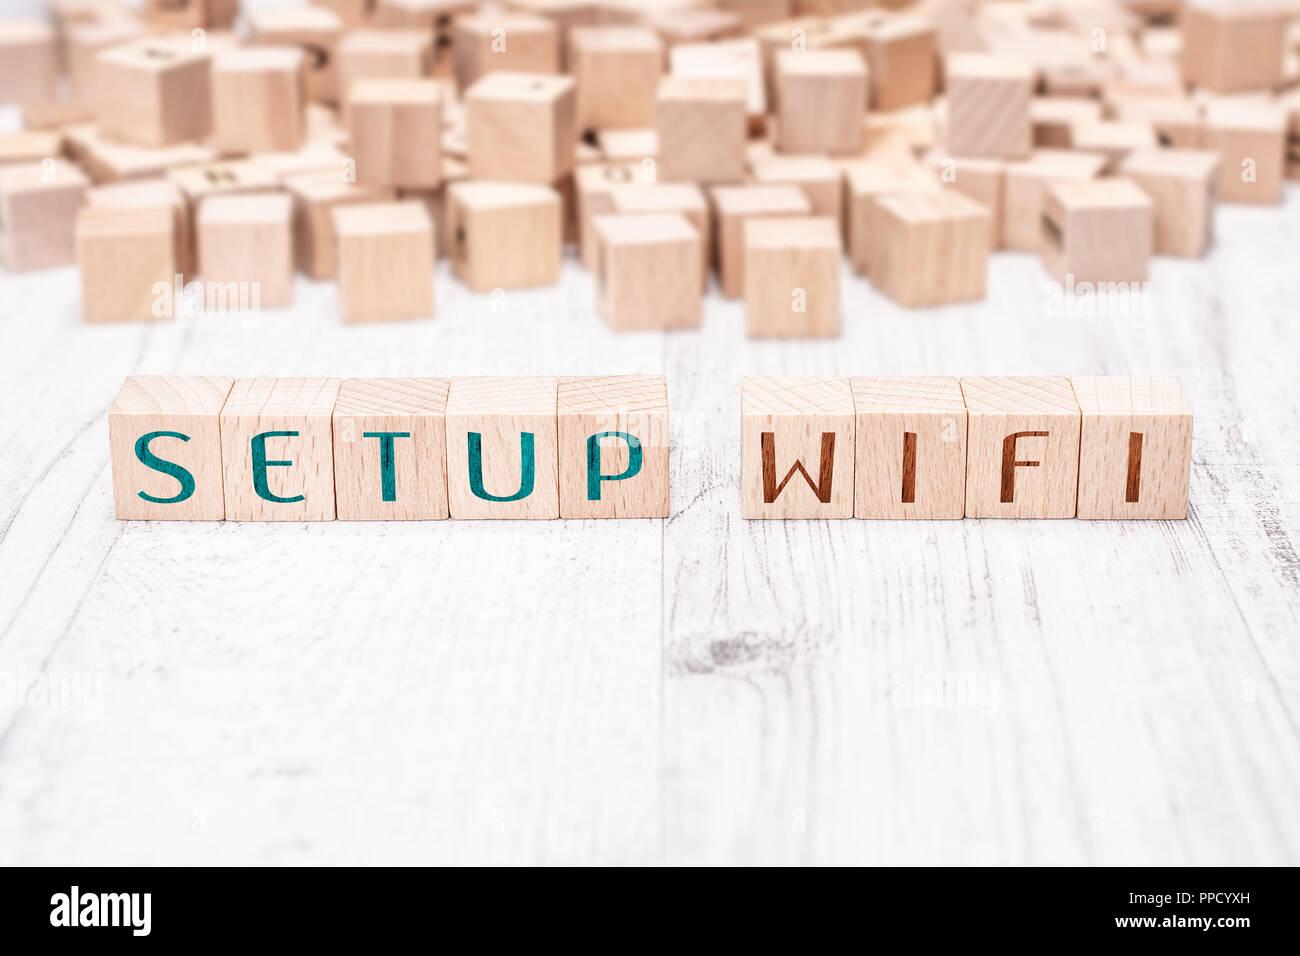 The Words Setup WIFI Formed By Wooden Blocks On A White Table - Stock Image